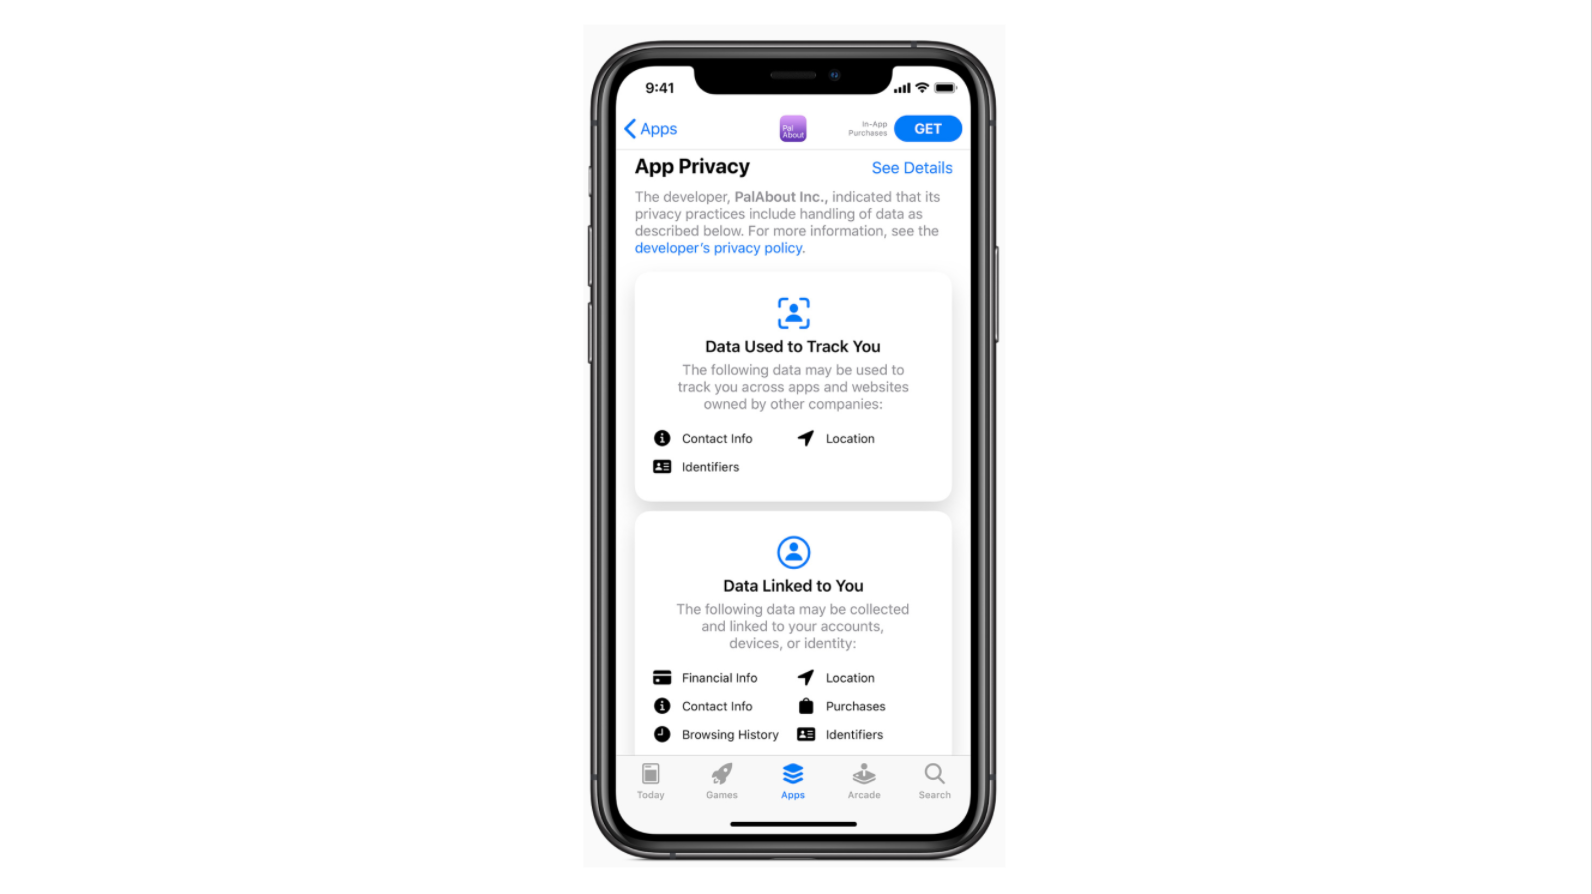 The new privacy section on the app store product page was unveiled by Apple during the last WWDC event